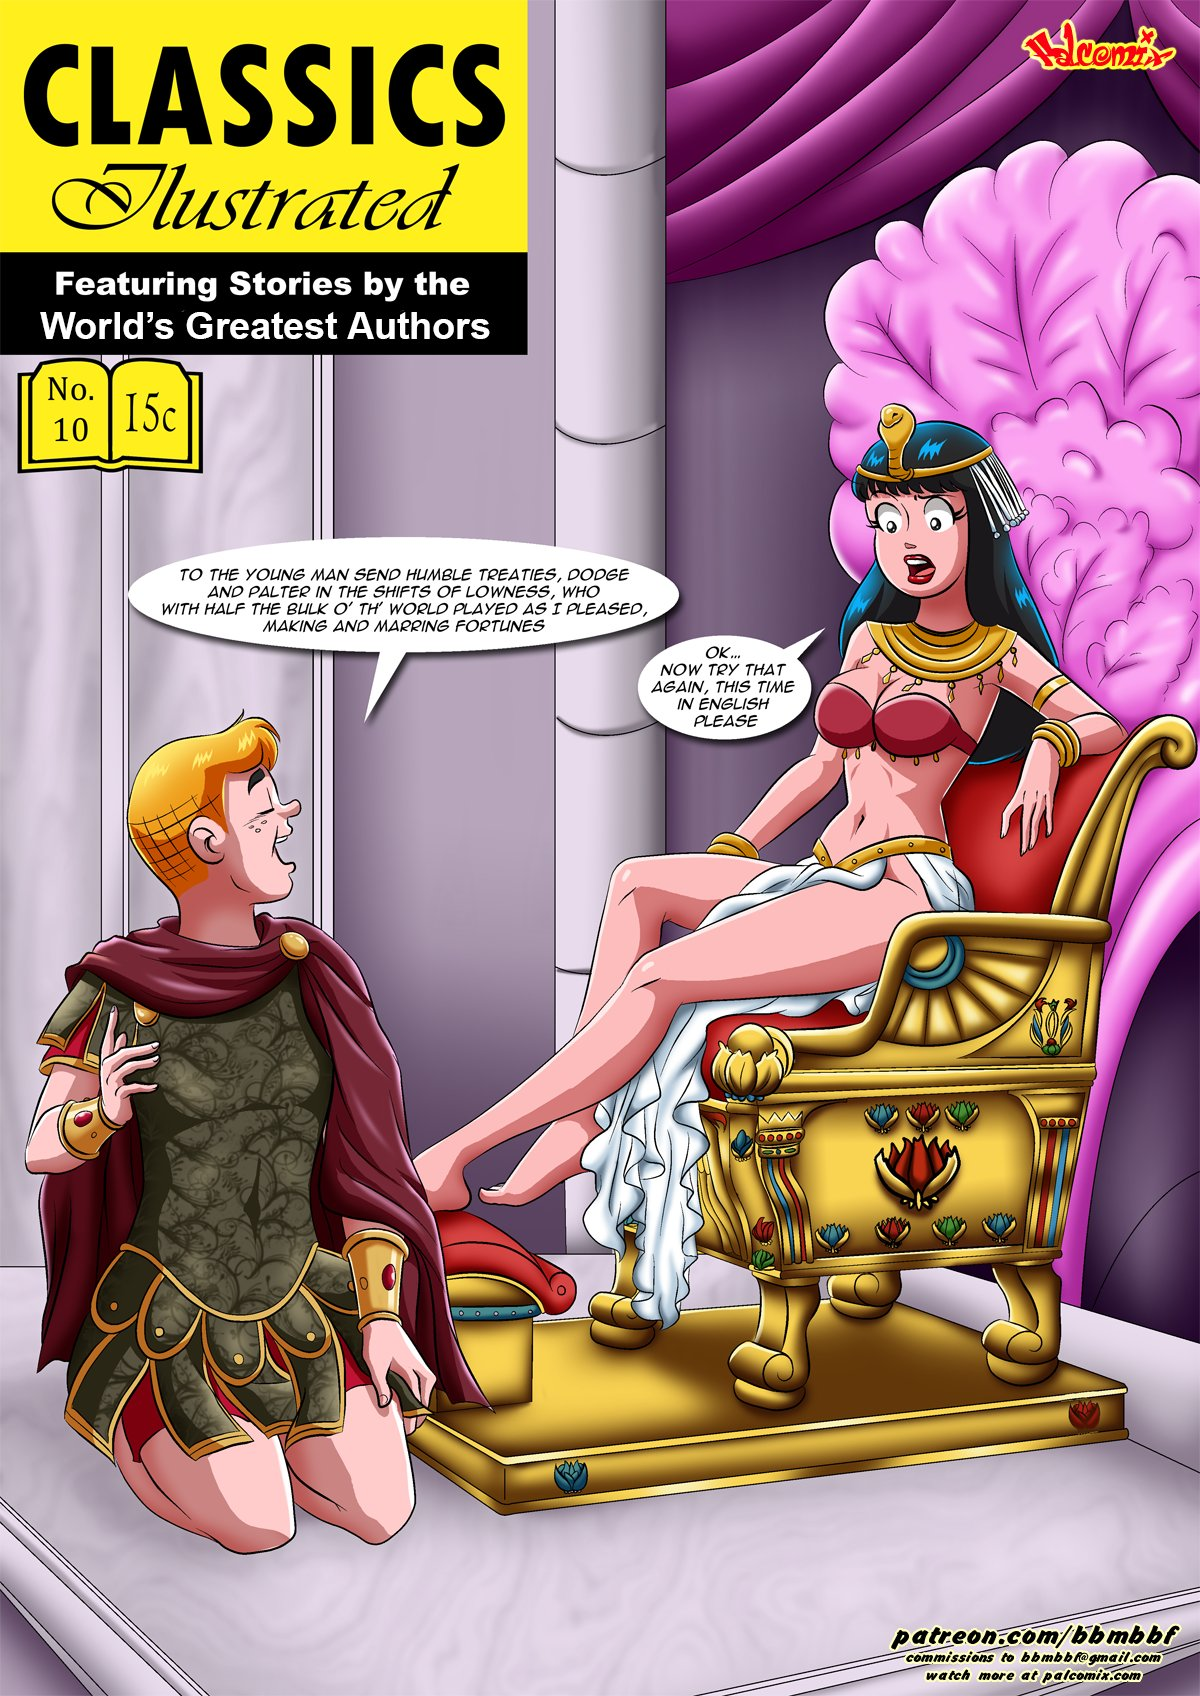 (Palcomix) Tales from Riverdale's Girls 2